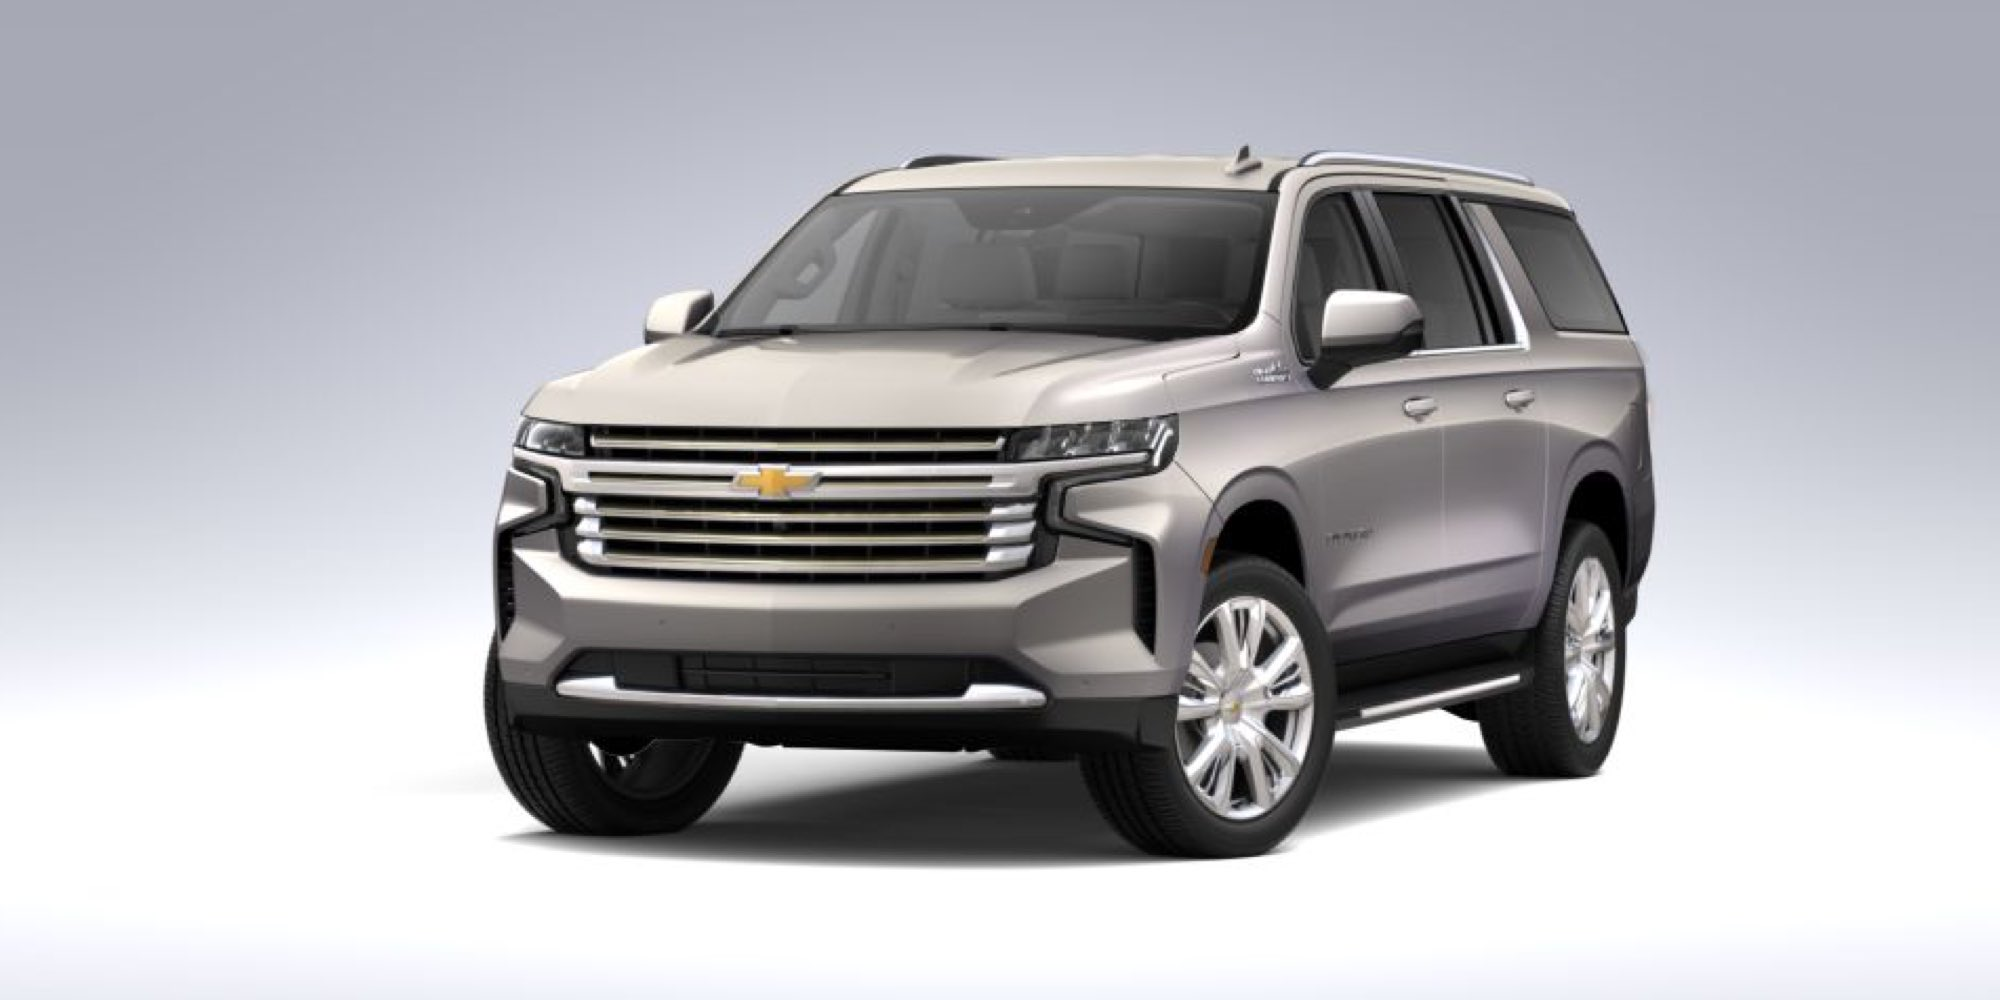 2021 Chevy Suburban in Empire Beige Metallic